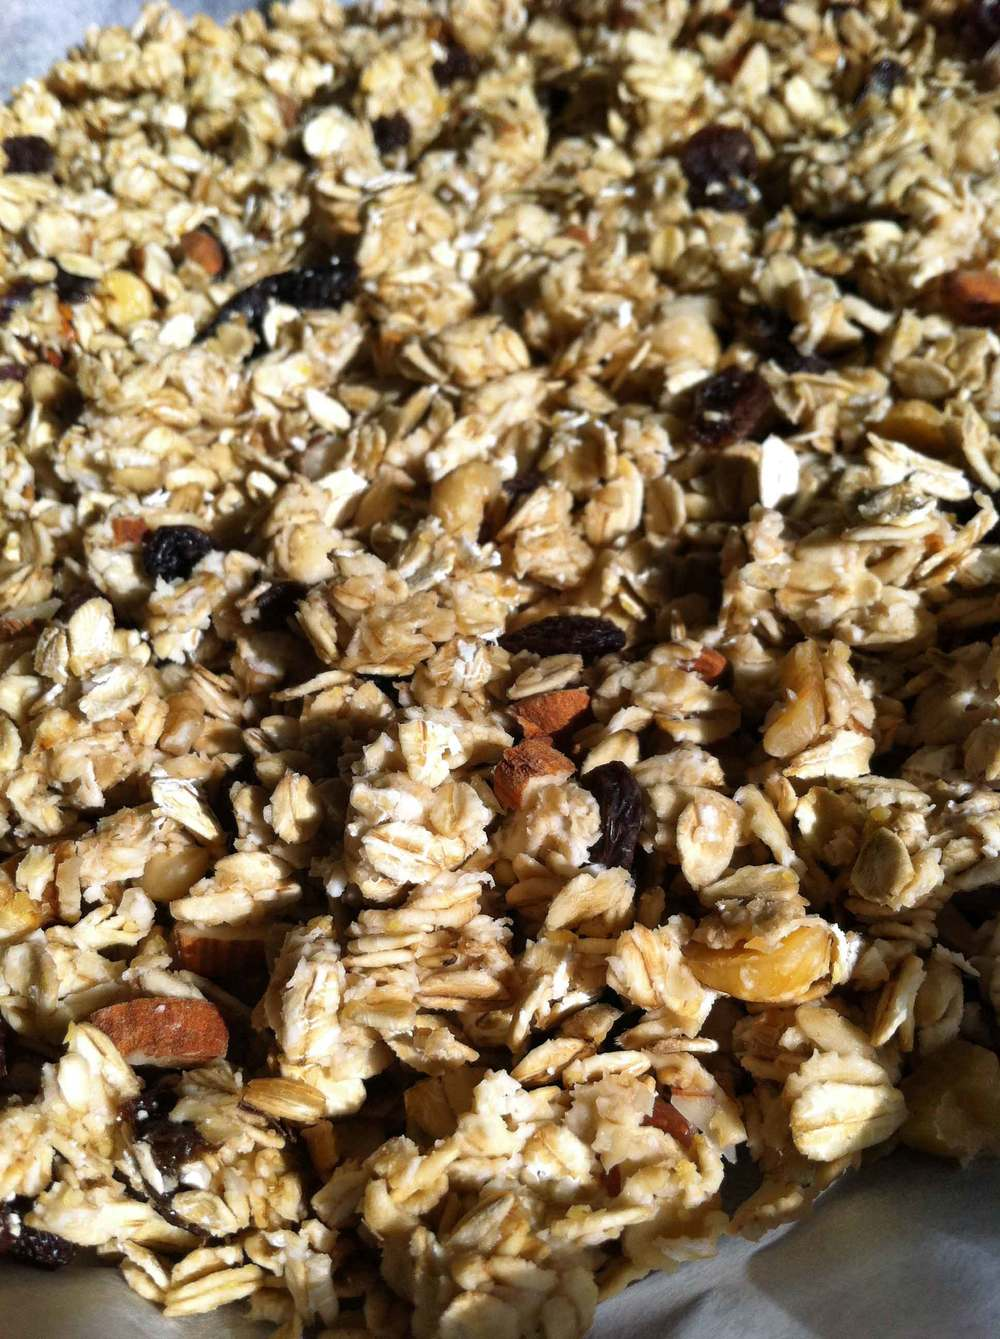 Home made organic granola from Fattoria Barbialla Nuova